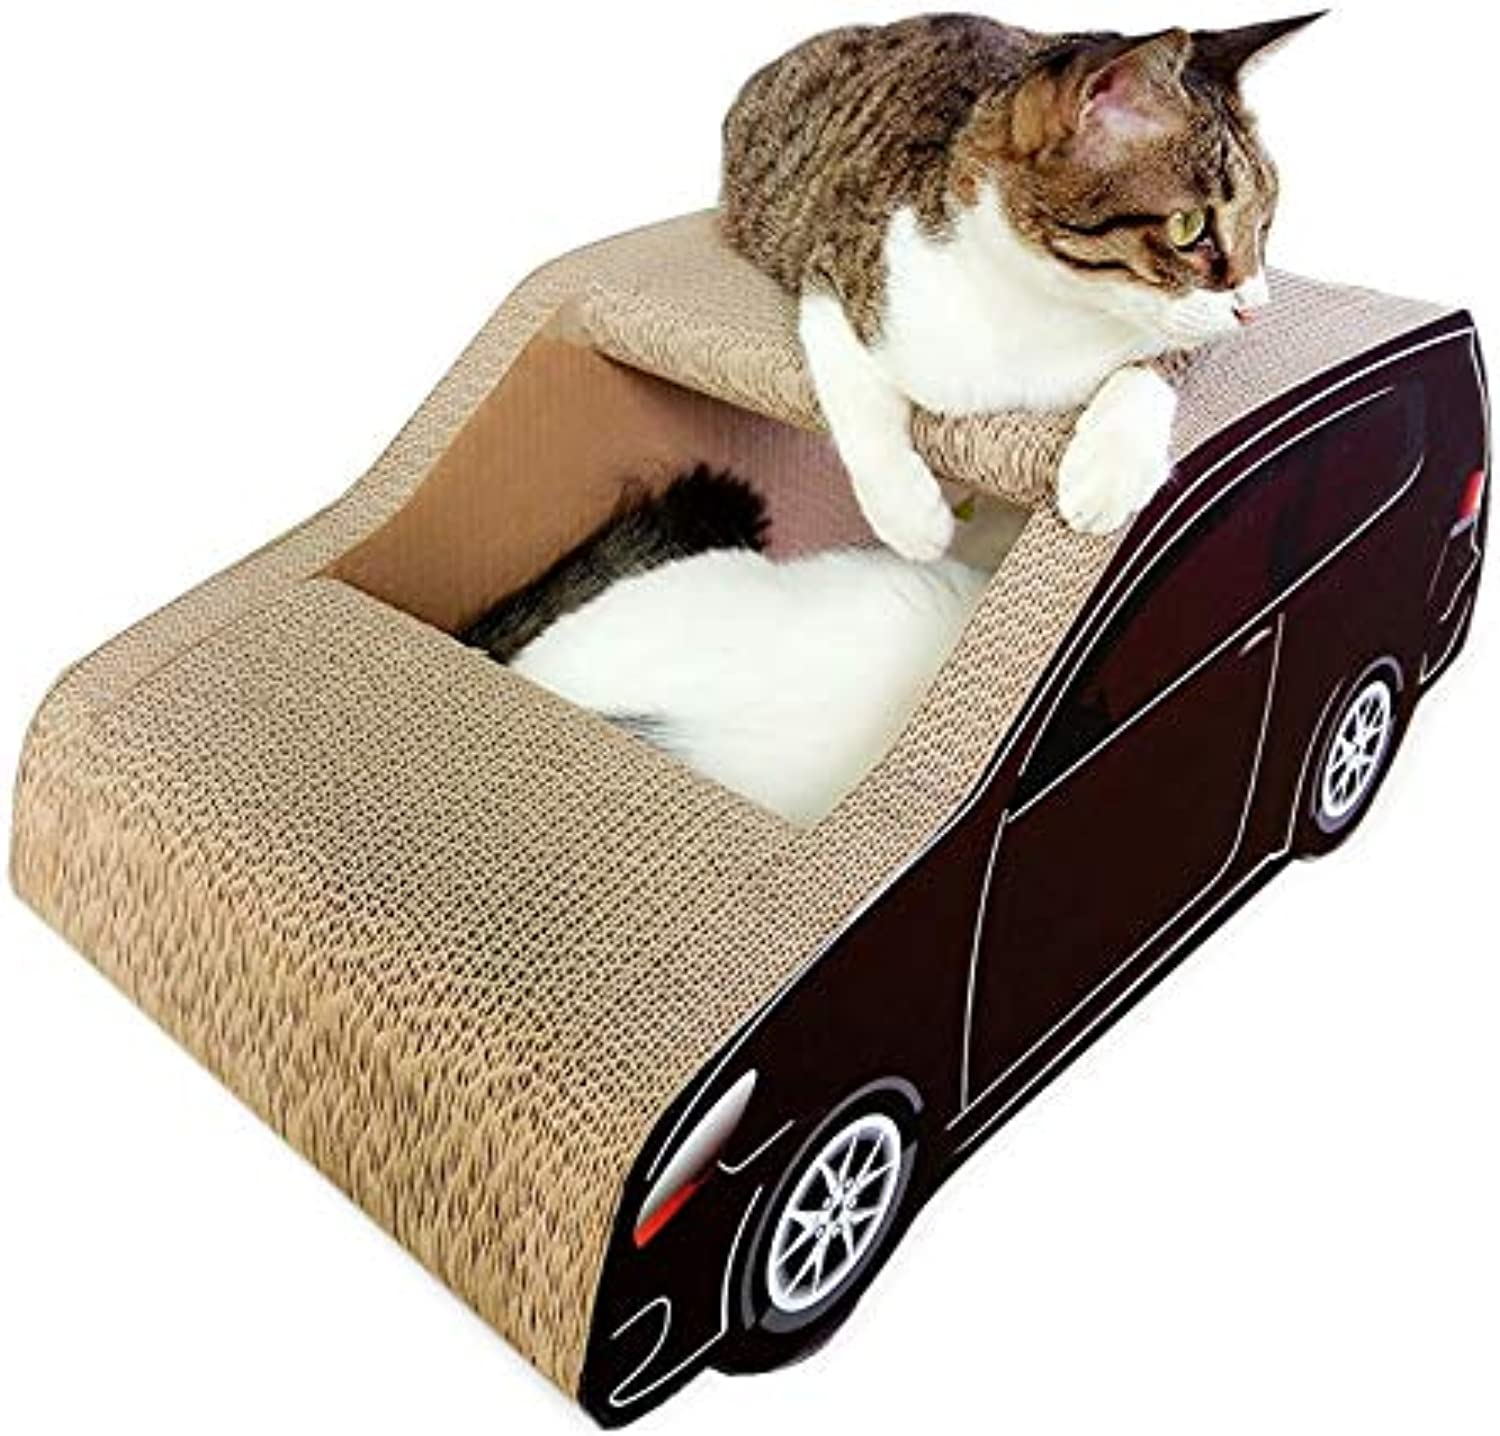 Cat Bed or Sofa hyx SUV Car Shaped Cat Litter Corrugated Paper Cat Scratch Board Grinding Claw Toy